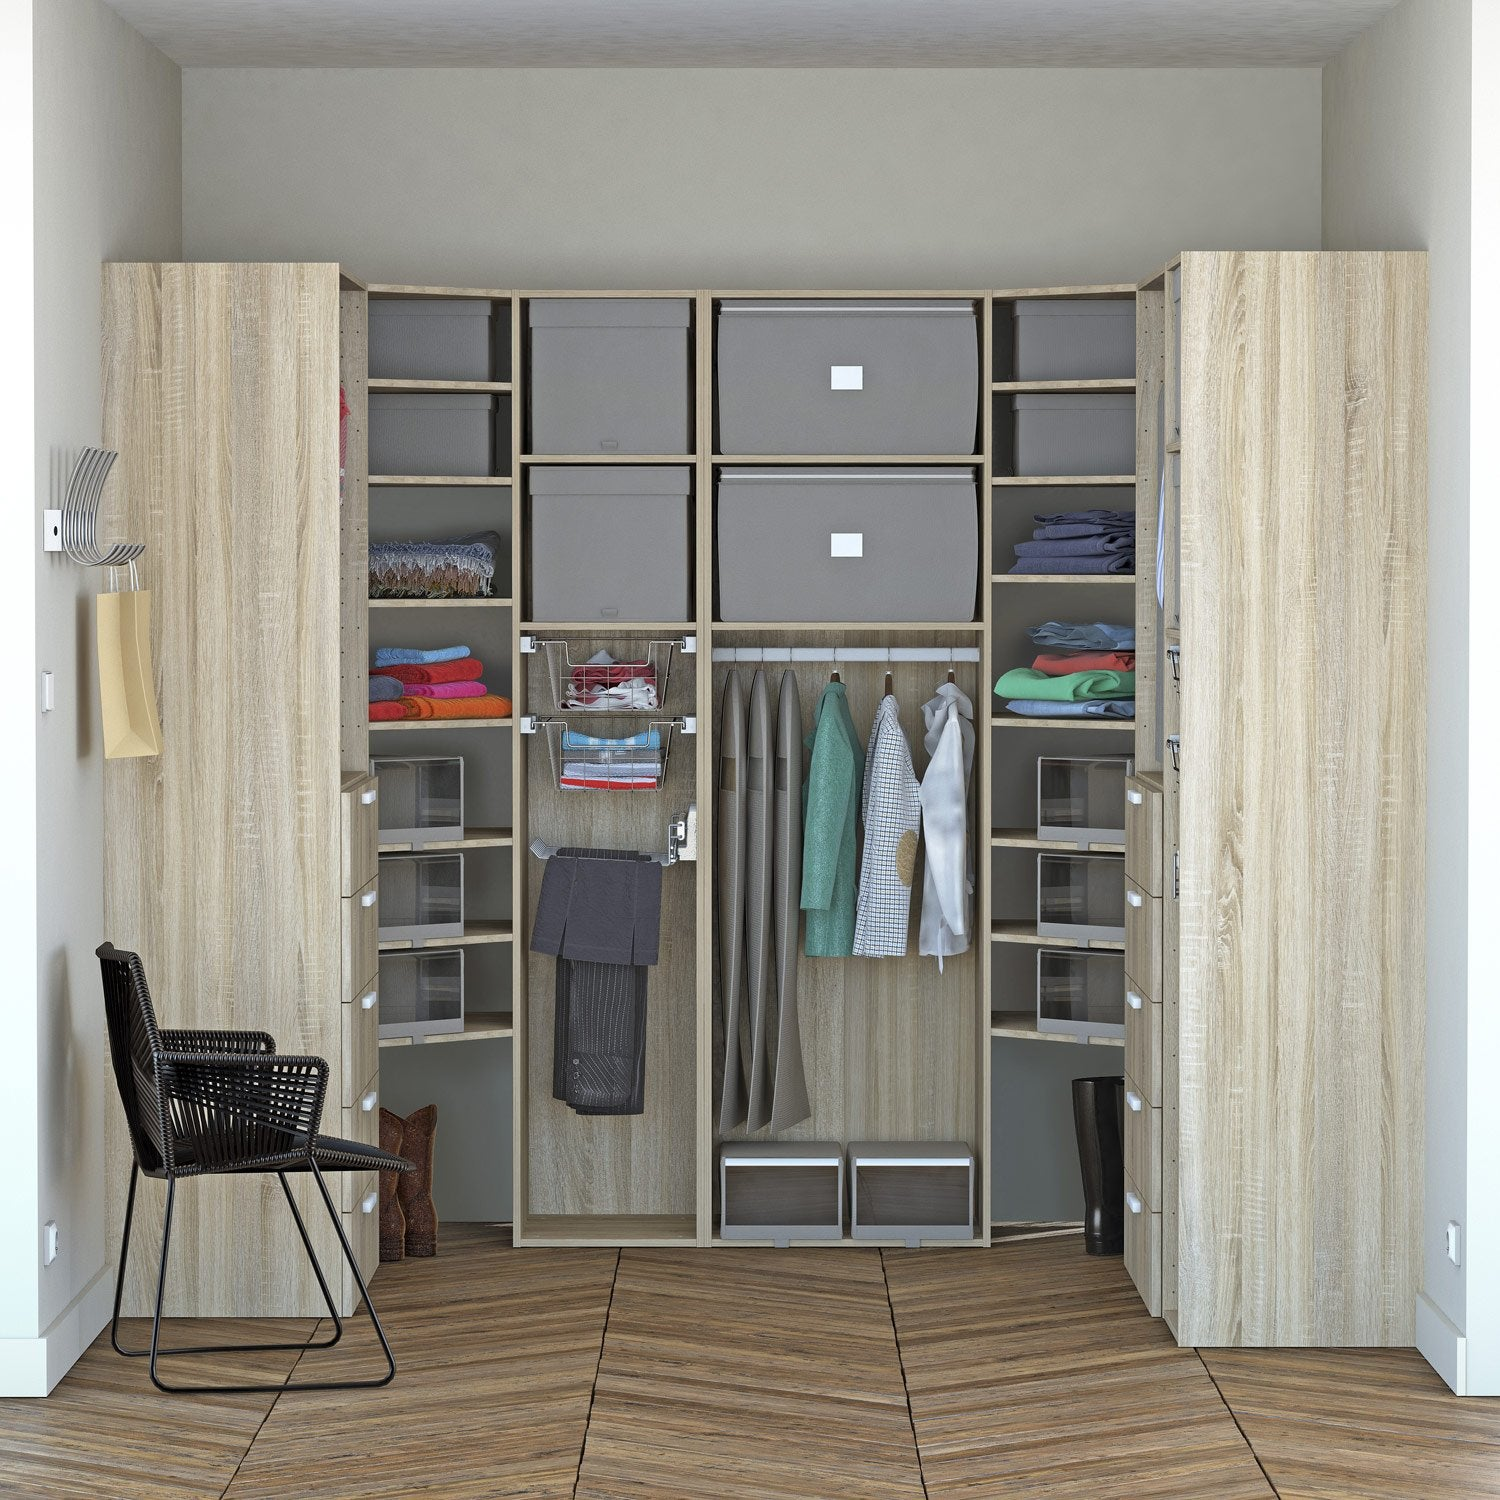 Dressing spaceo home effet ch ne leroy merlin - Dressing sous pente leroy merlin ...